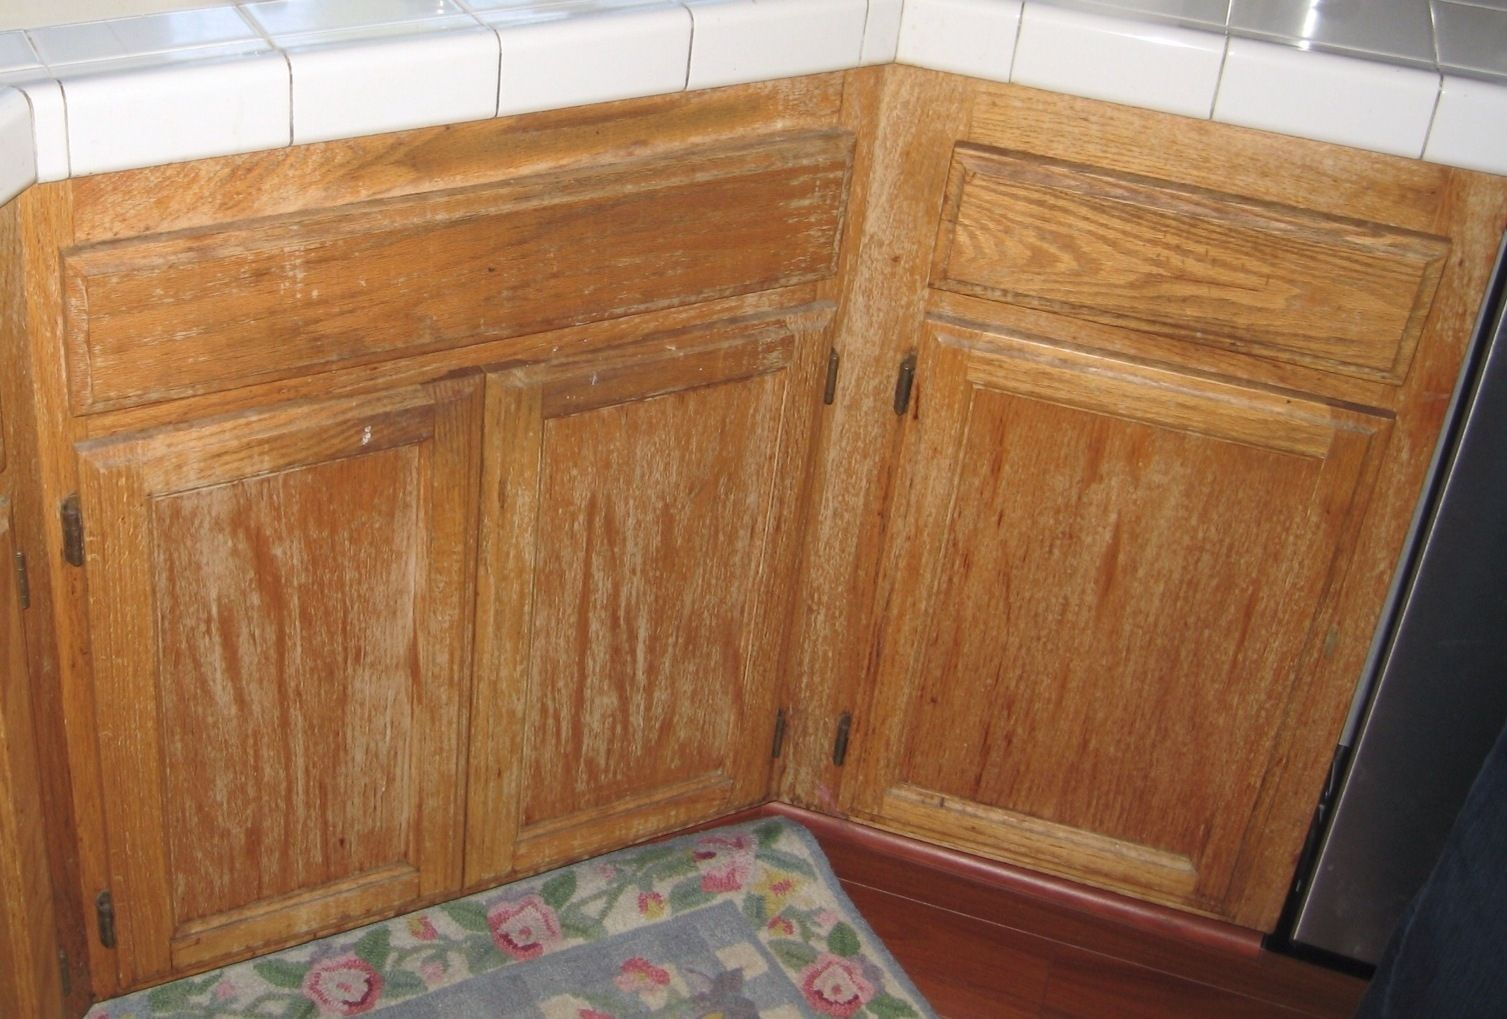 Warped Under Sink Kitchen Cabinet Kitchen Cabinets For Sale Kitchen Cabinets Repair Wooden Kitchen Cabinets